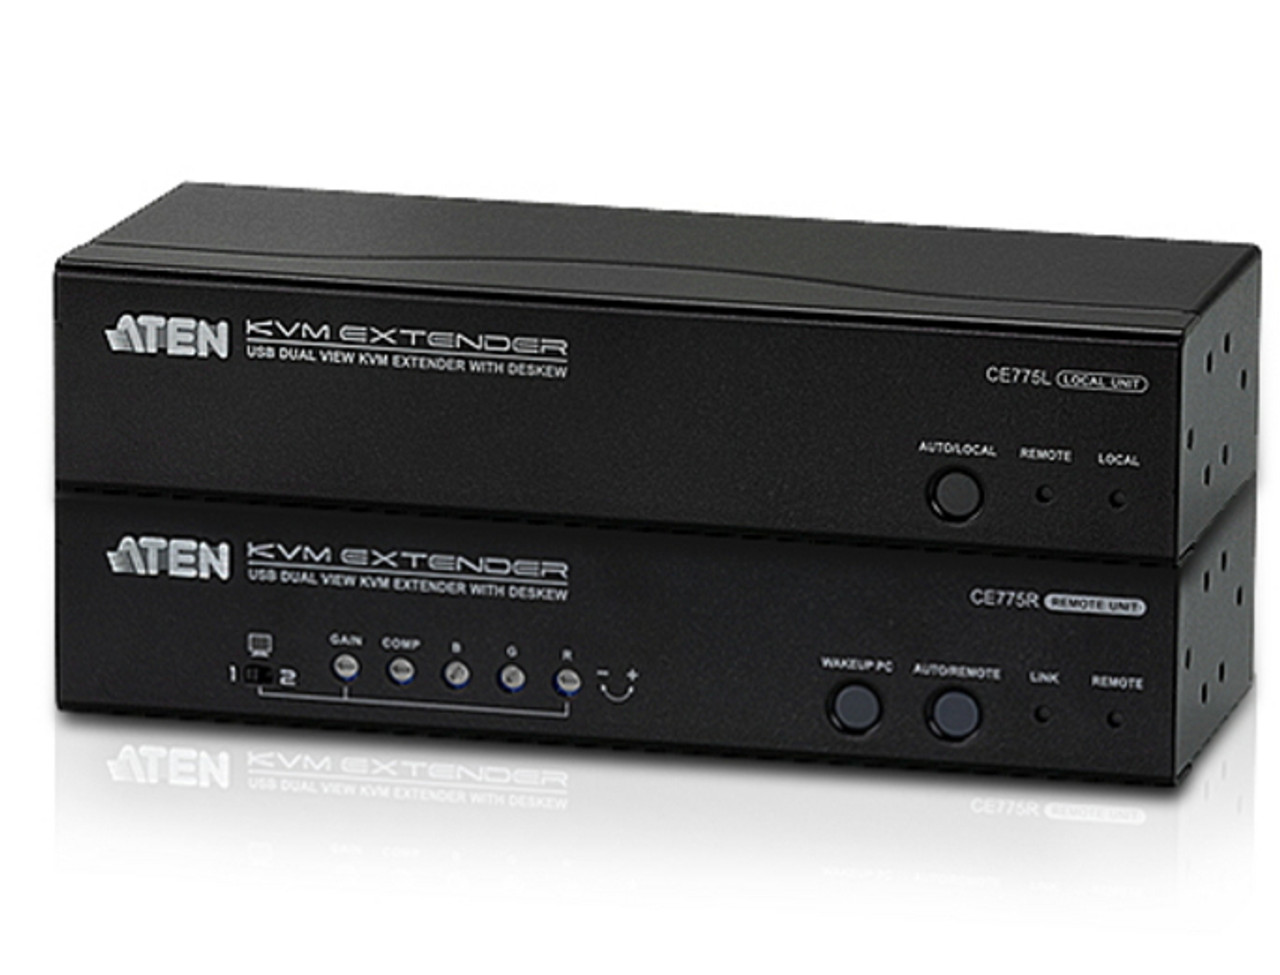 Image for ATEN CE775 USB VGA Dual View Cat5 KVM Extender with Deskew - 1280x1024 at 300m CX Computer Superstore